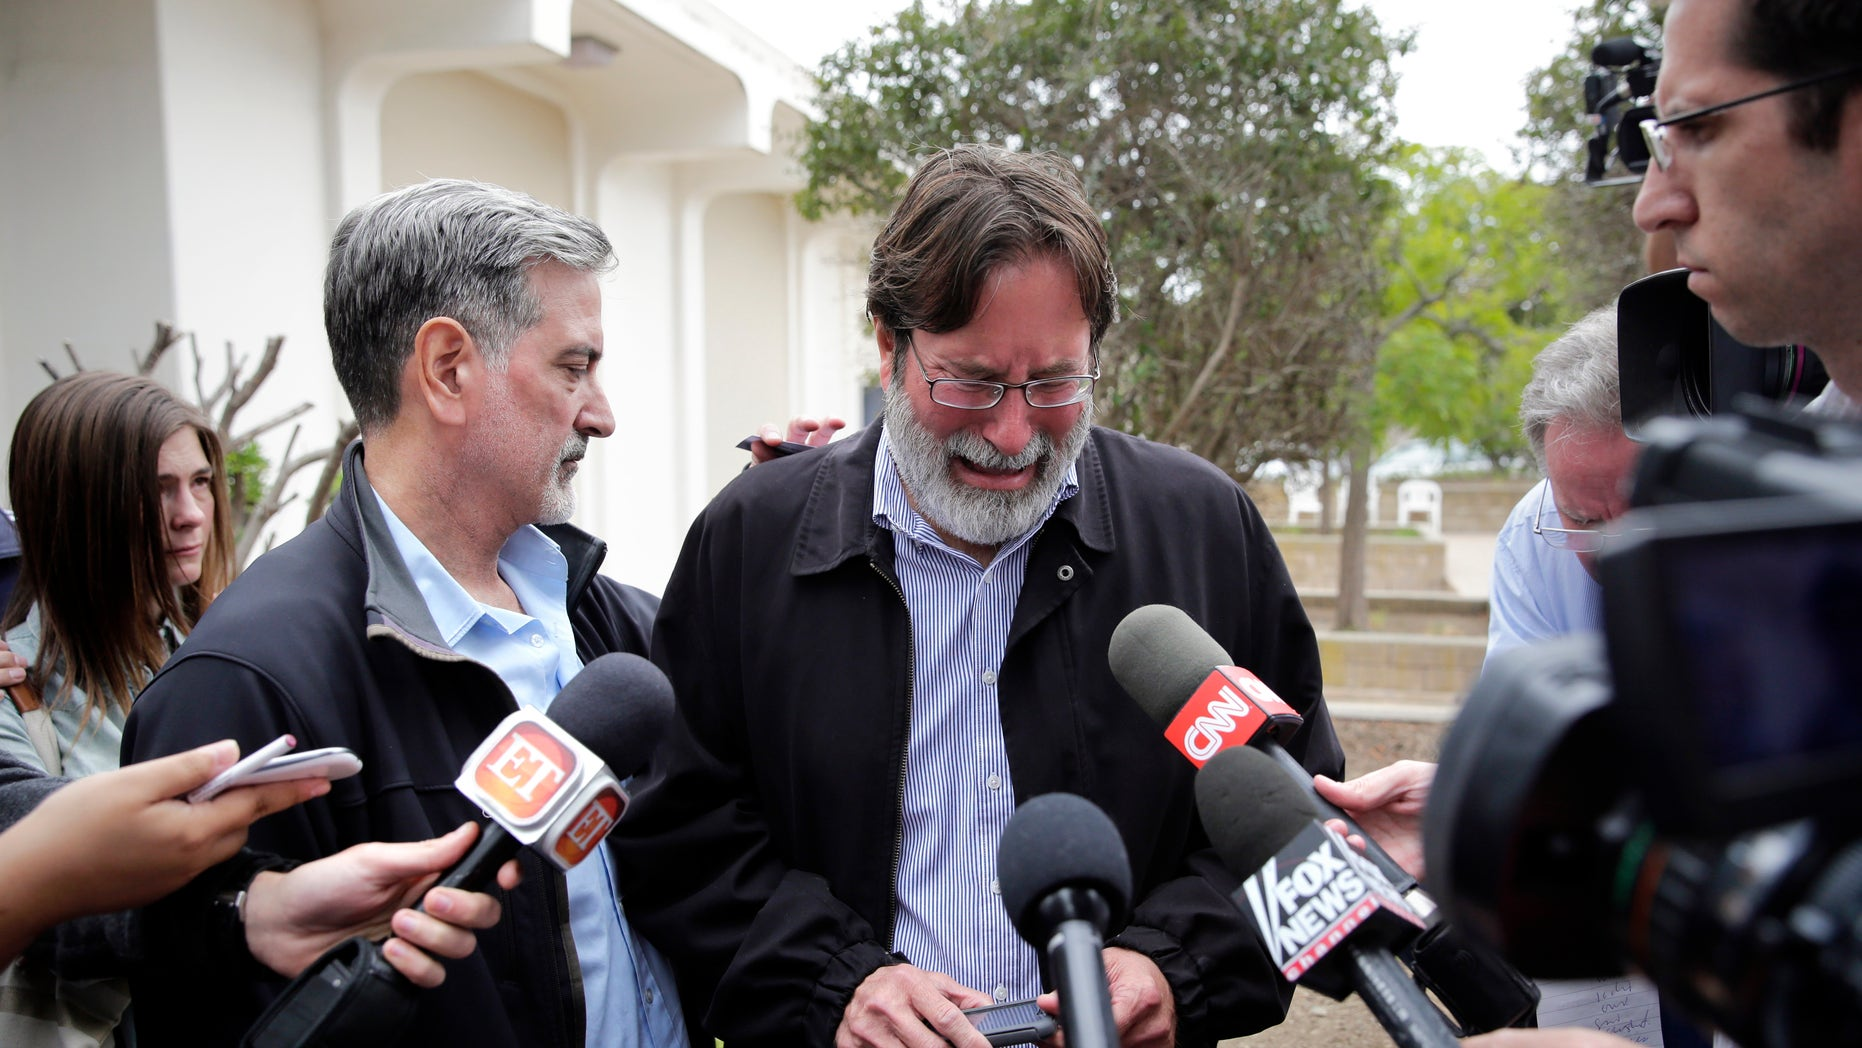 Richard Martinez is comforted by his brother Alan on Saturday, May 24, 2014, in Santa Barbara, Calif.